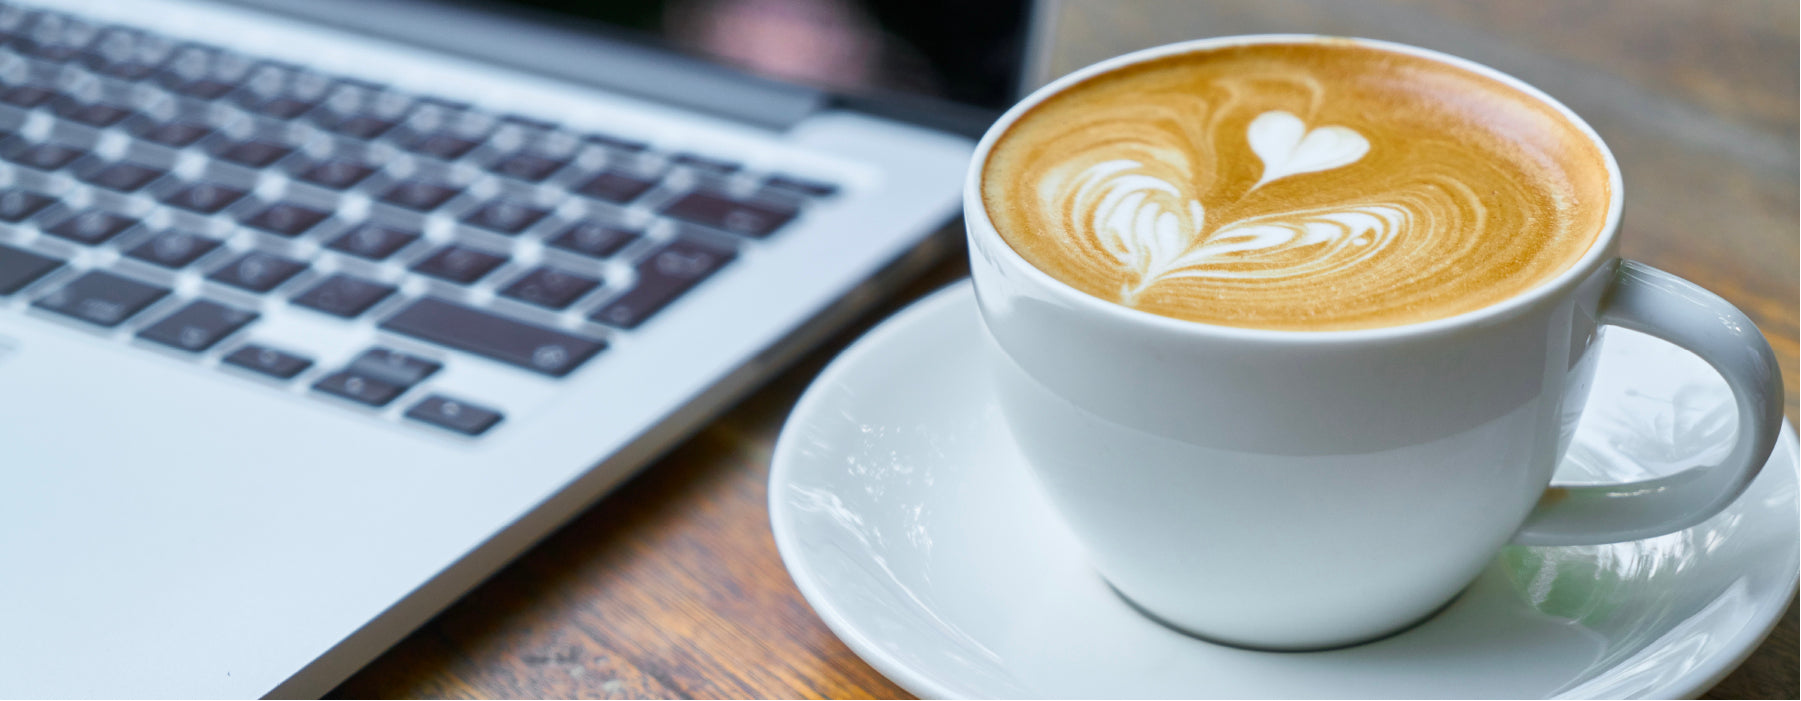 Is Coffee Good for You? Myths of Caffeine Busted! - Coffee Life by EspressoWorks